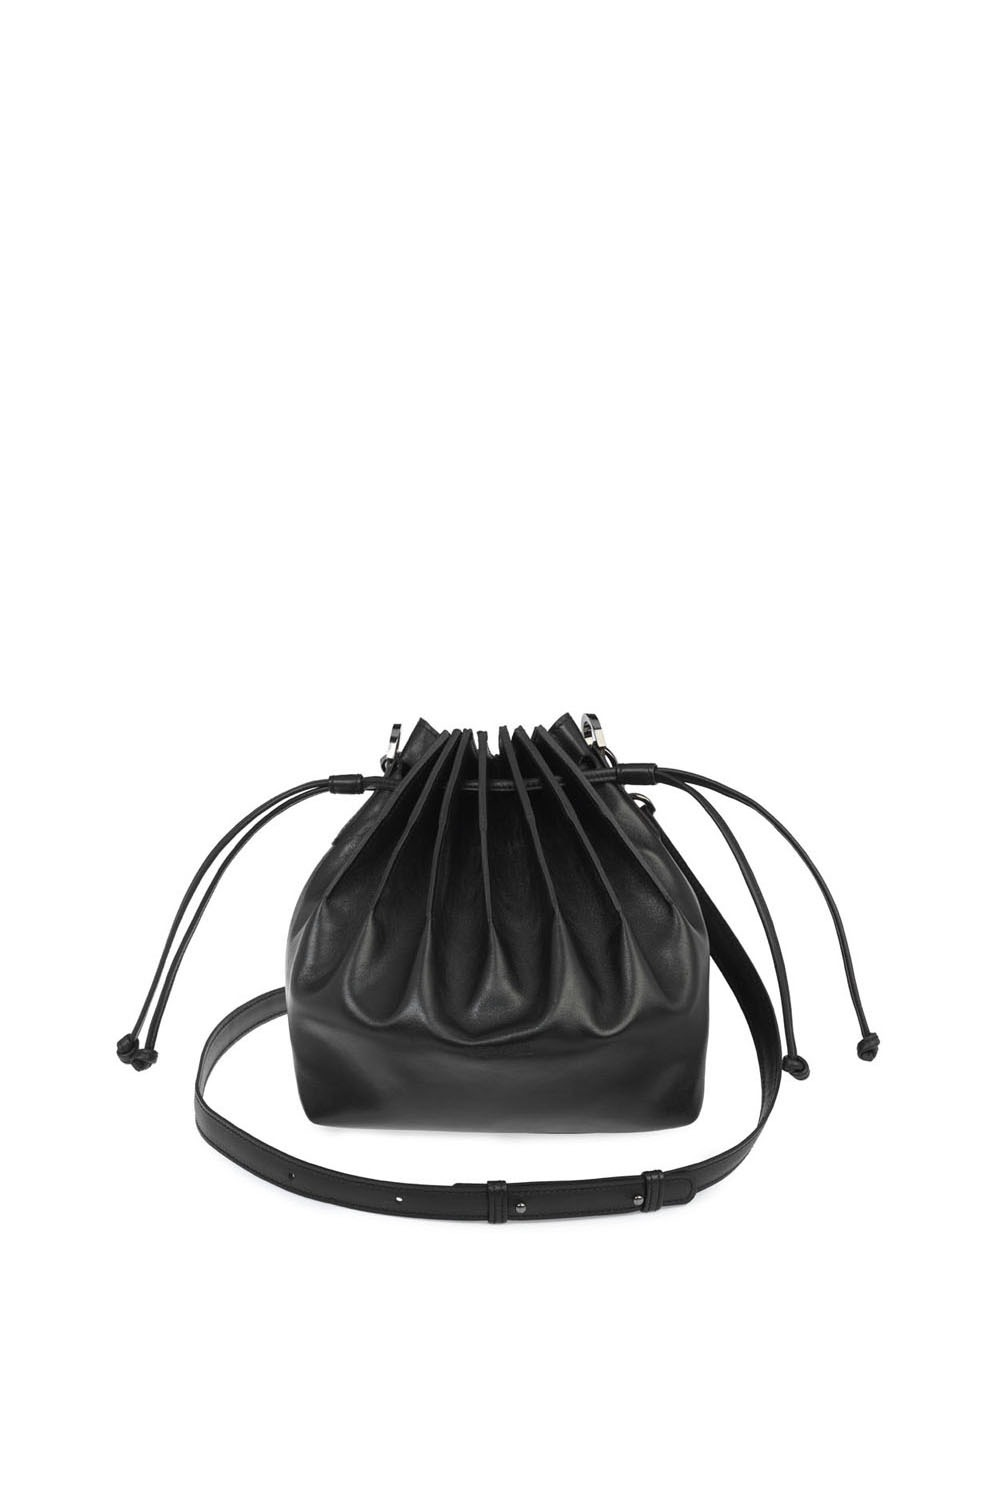 VATINEL HANDBAGS CAIRO BLACK